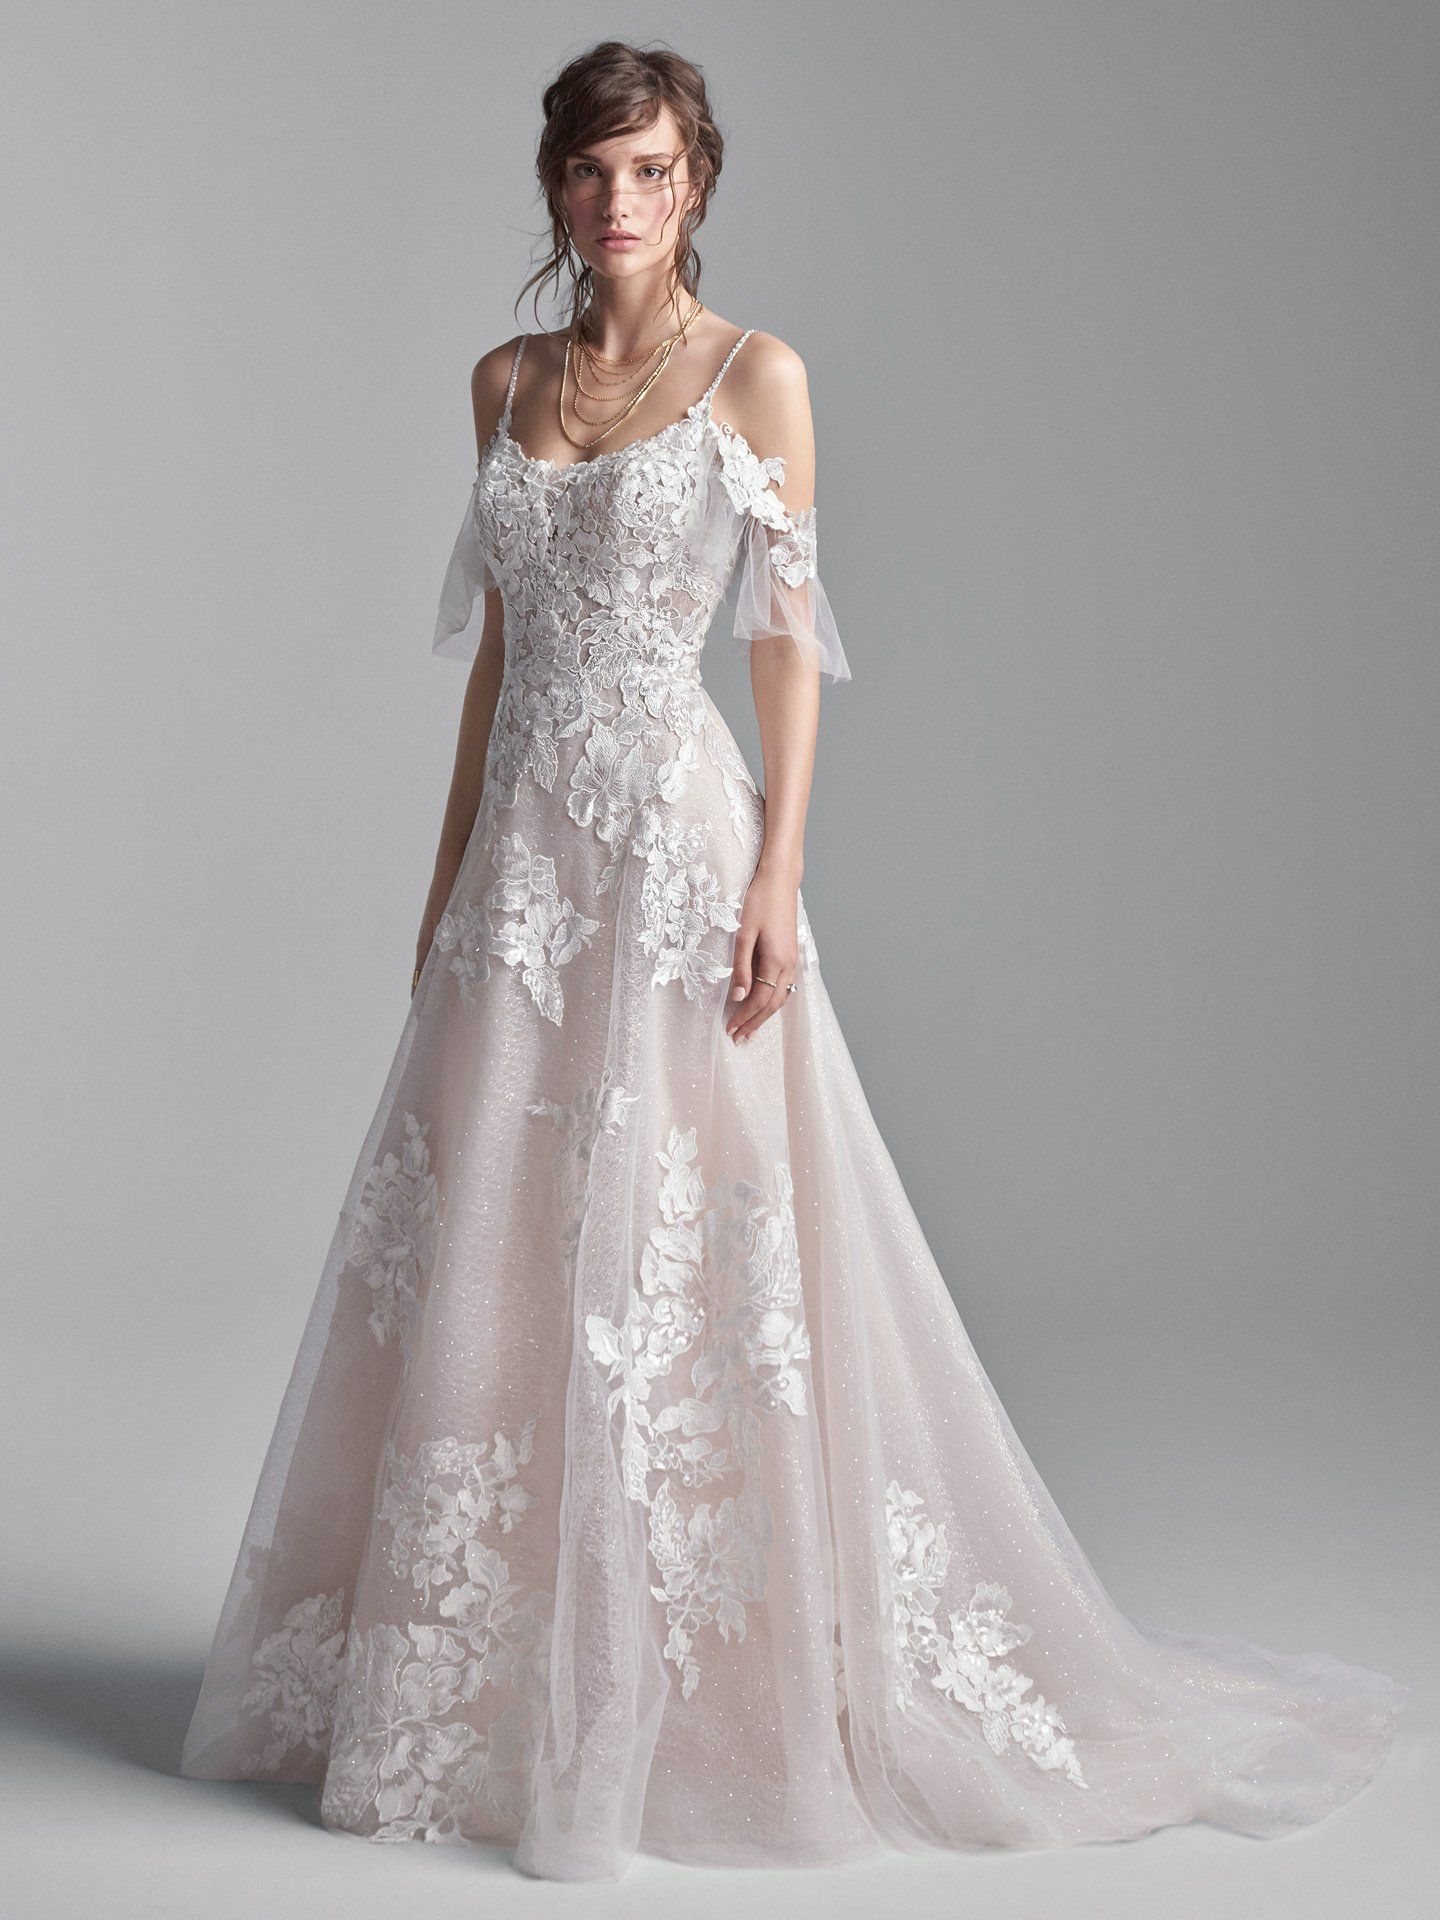 Houston By Sottero And Midgley Wedding Dresses In 2020 Sottero And Midgley Wedding Dresses Wedding Dresses Ball Gown Wedding Dress